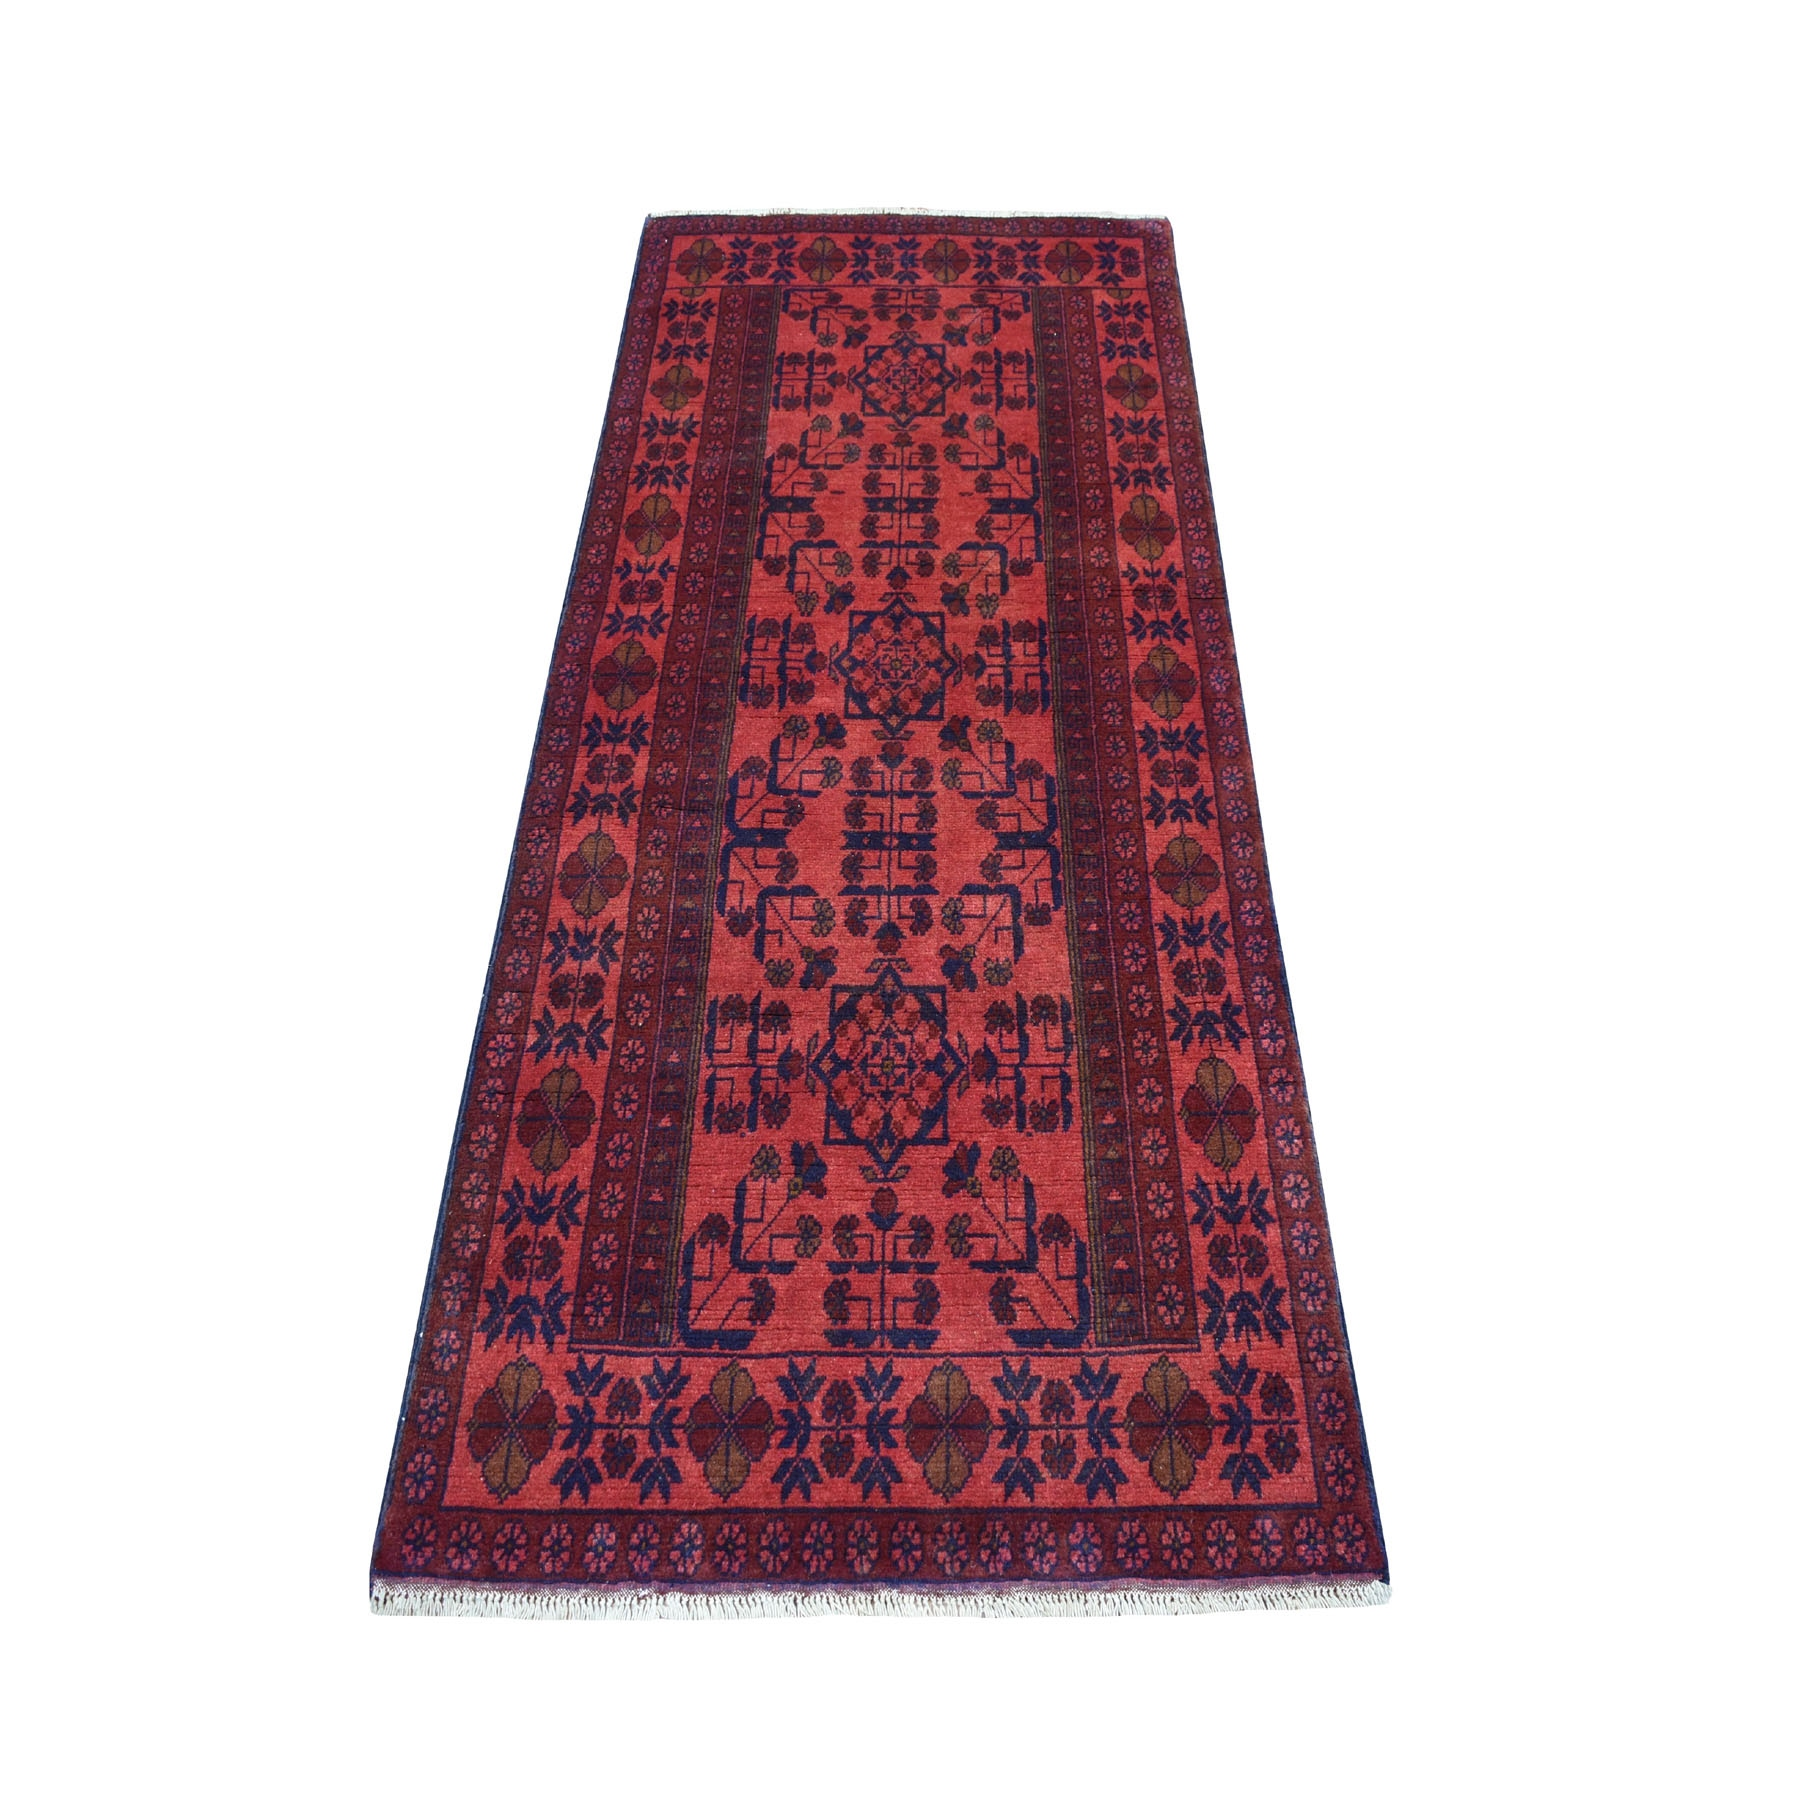 "2'8""X6'4"" Deep And Saturated Red Geometric Afghan Andkhoy Runner Pure Wool Hand Knotted Oriental Rug moaece60"